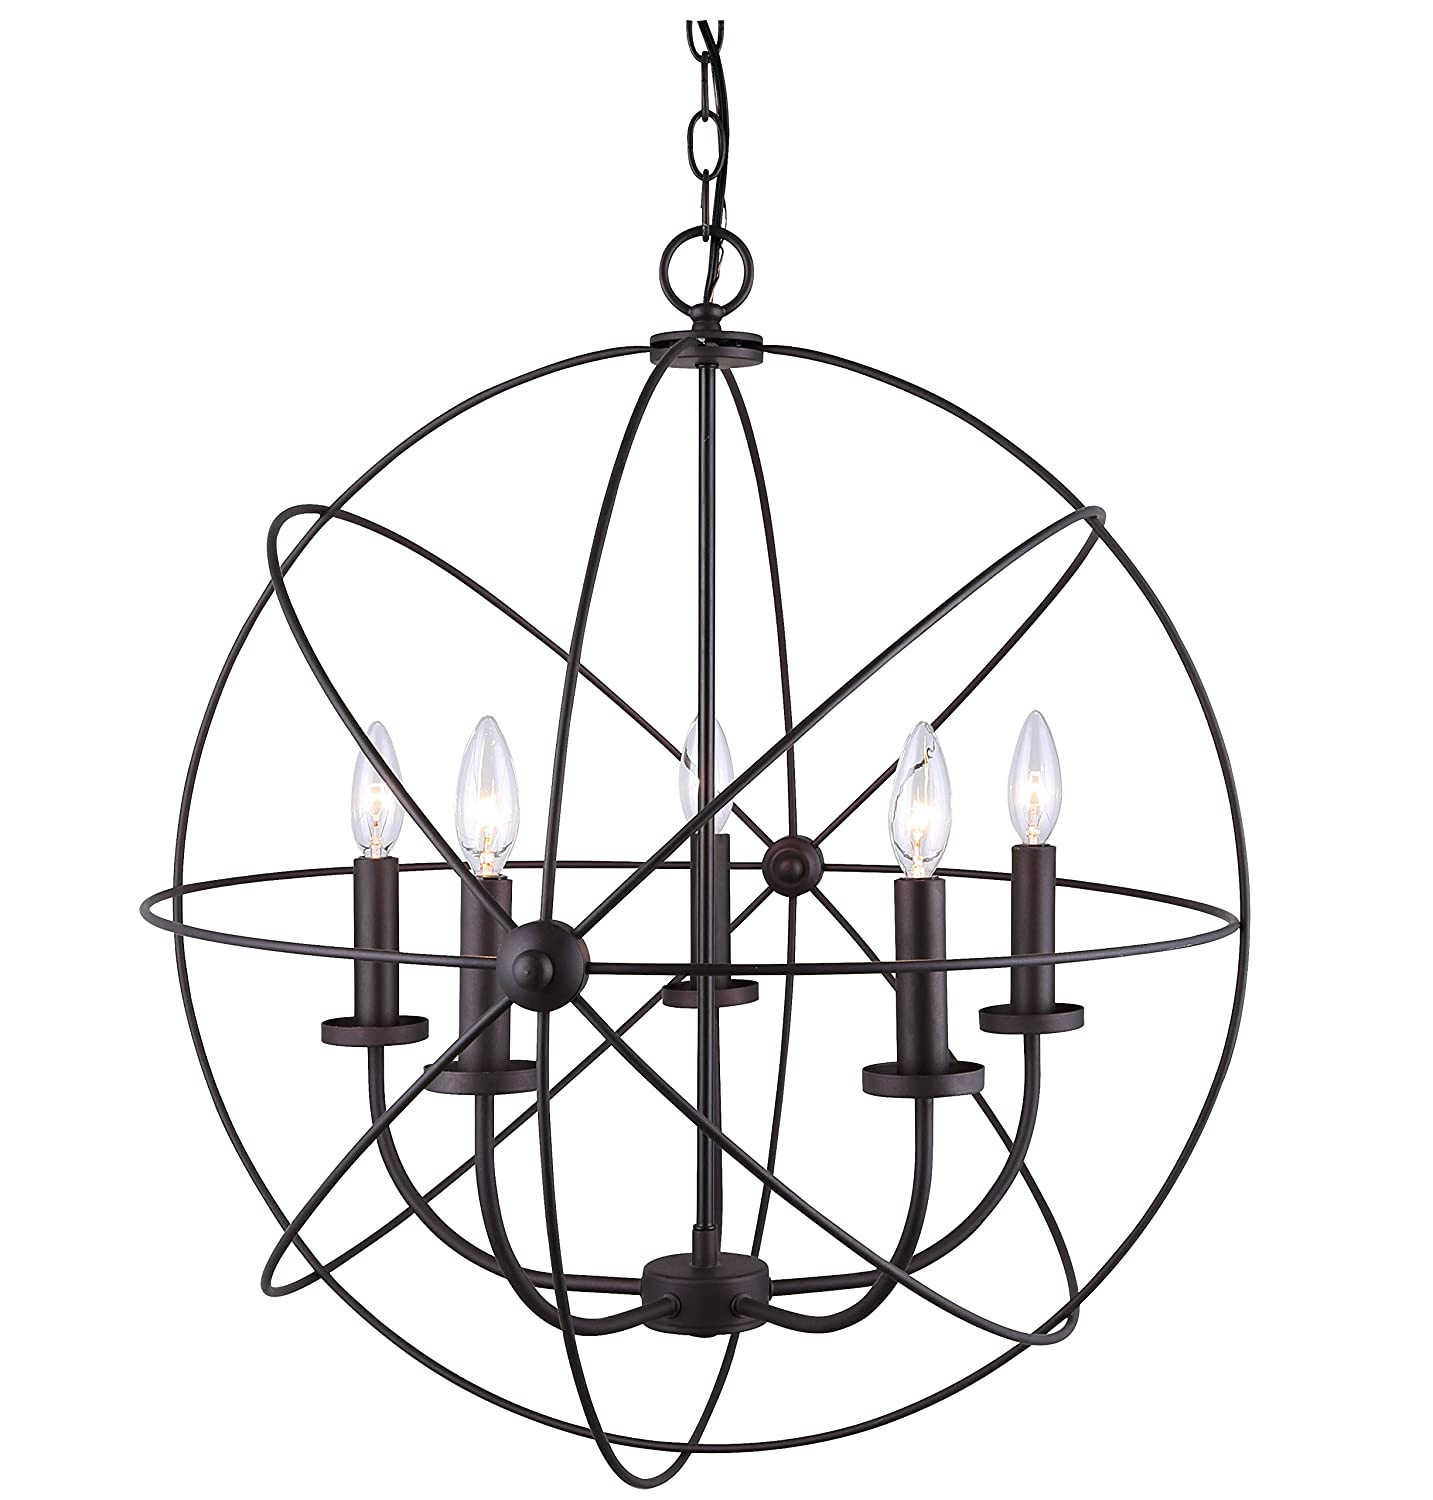 CANARM ICH282B05ORB25 Sumerside 5 Light Chandelier Amazon